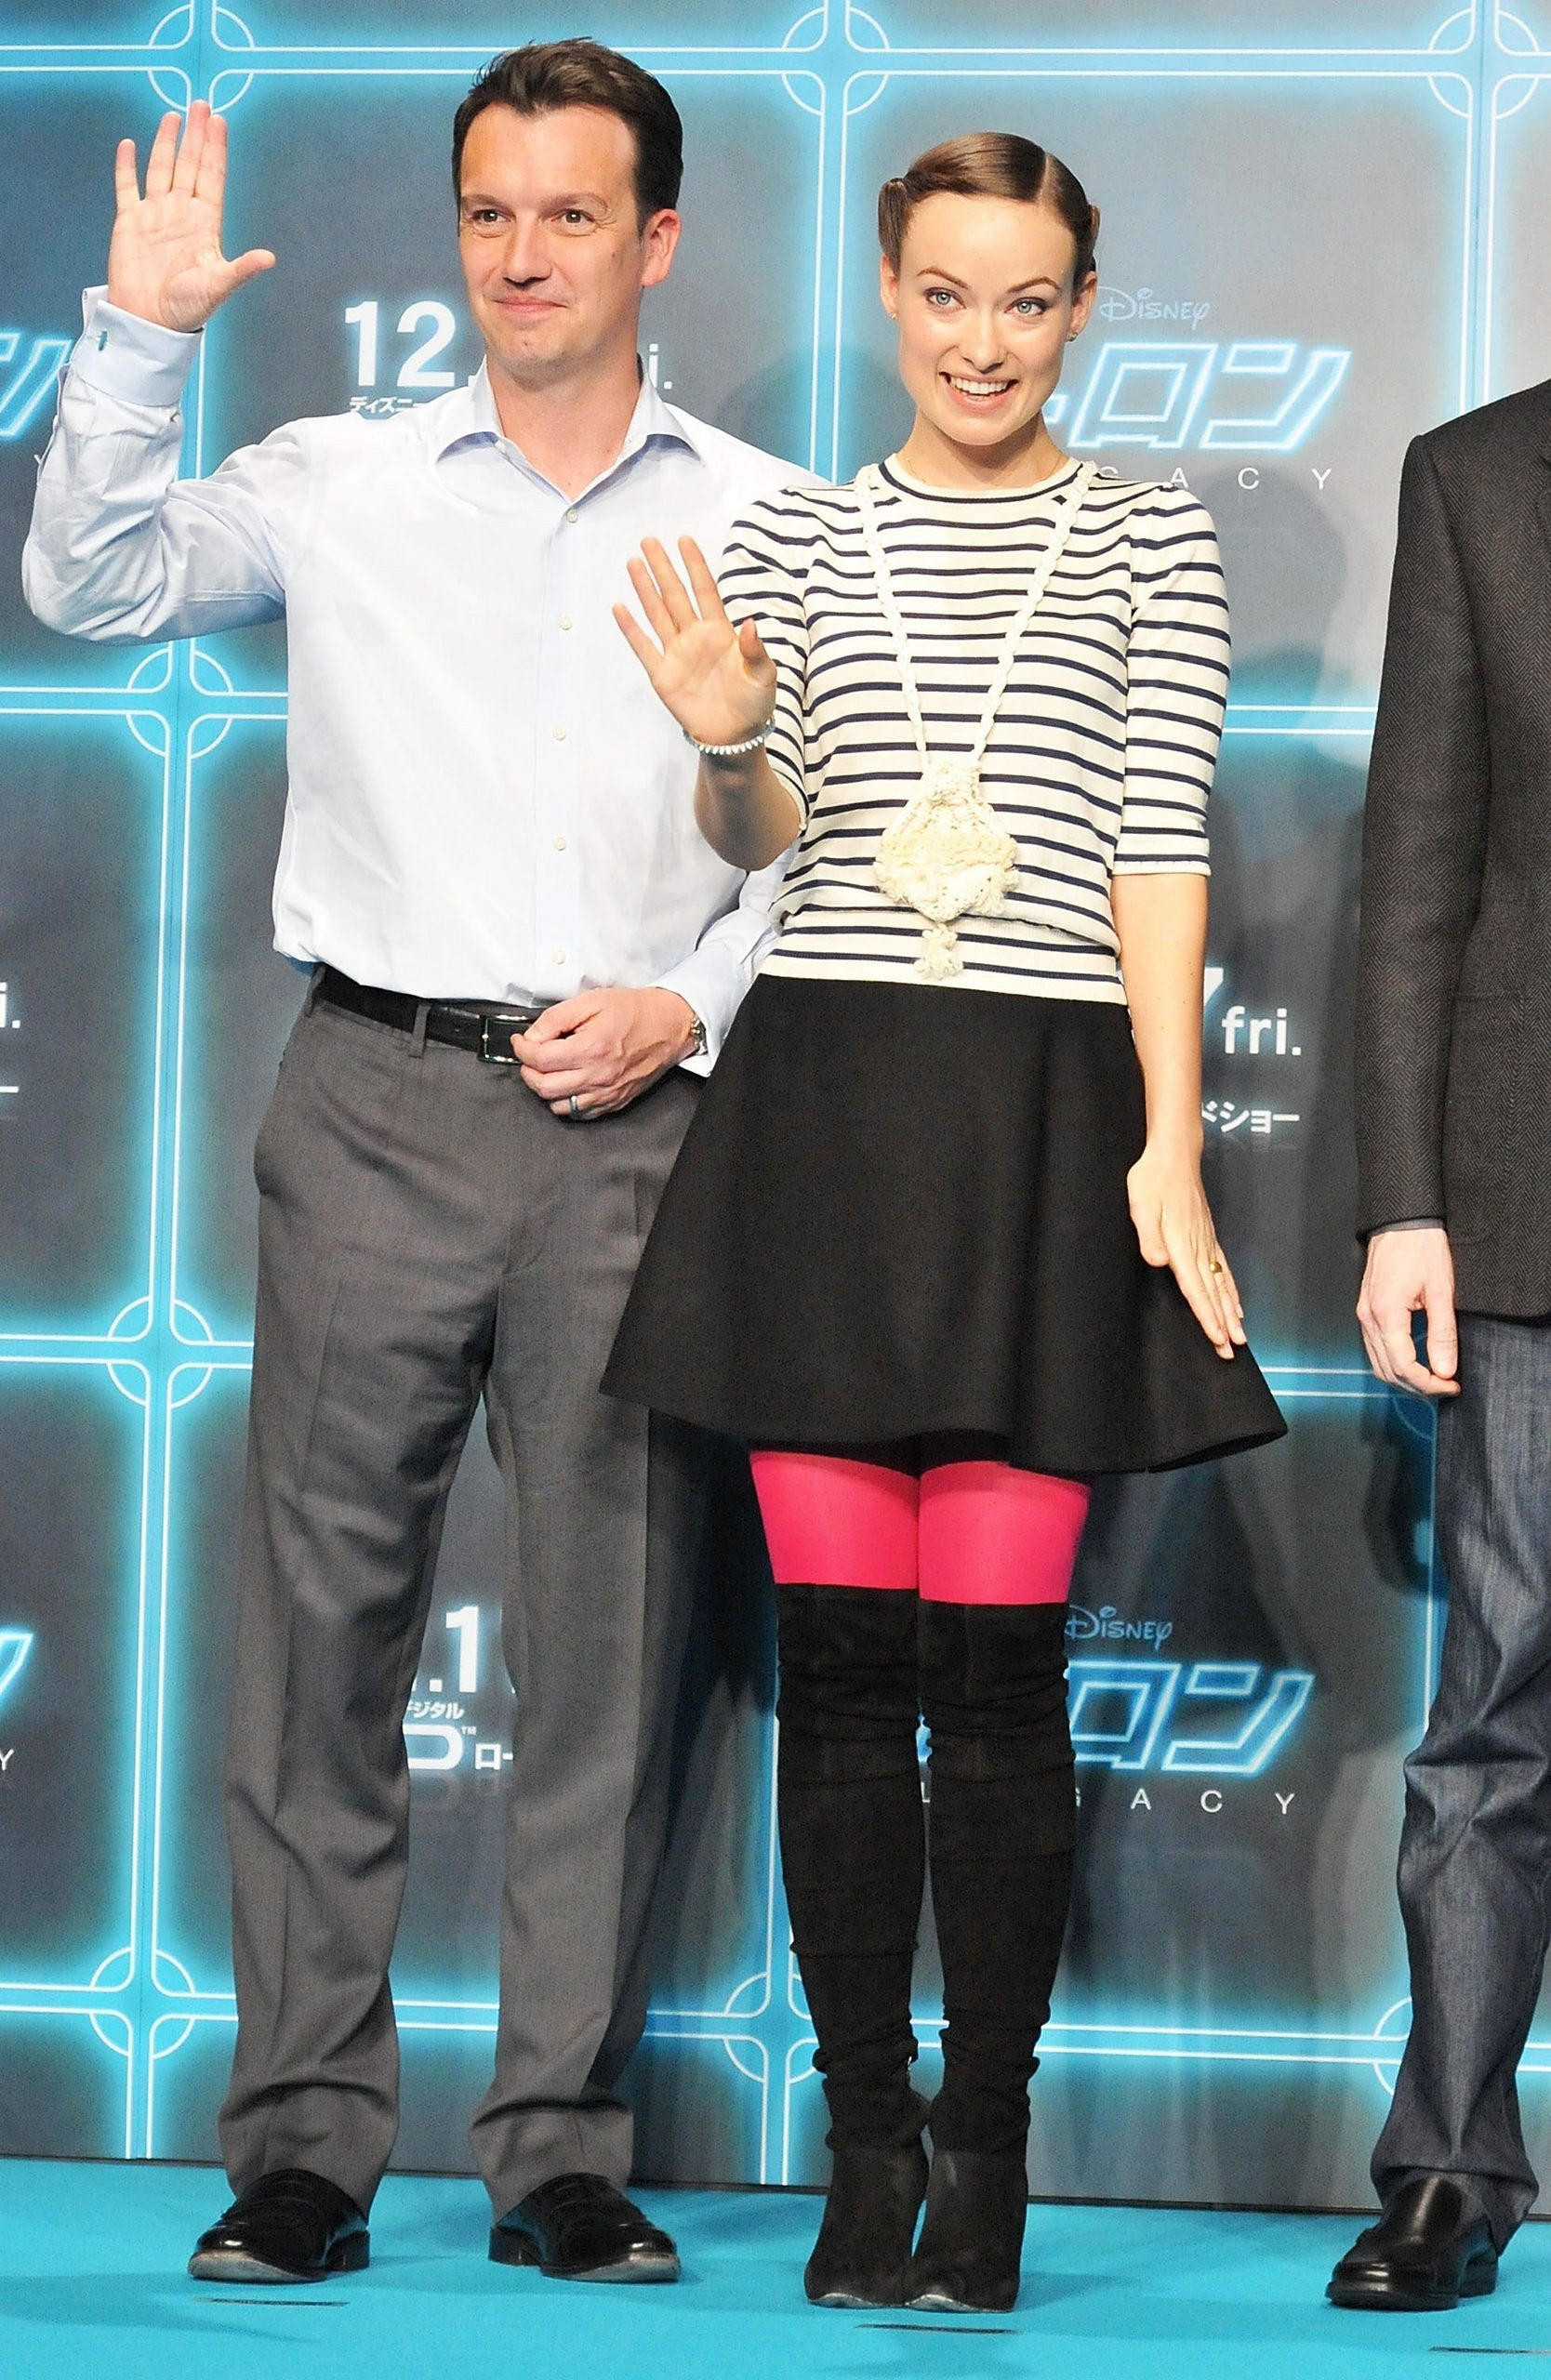 Olivia Wilde @ the 'Tron: Legacy' Press Conference in Tokyo, Japan (HQ)